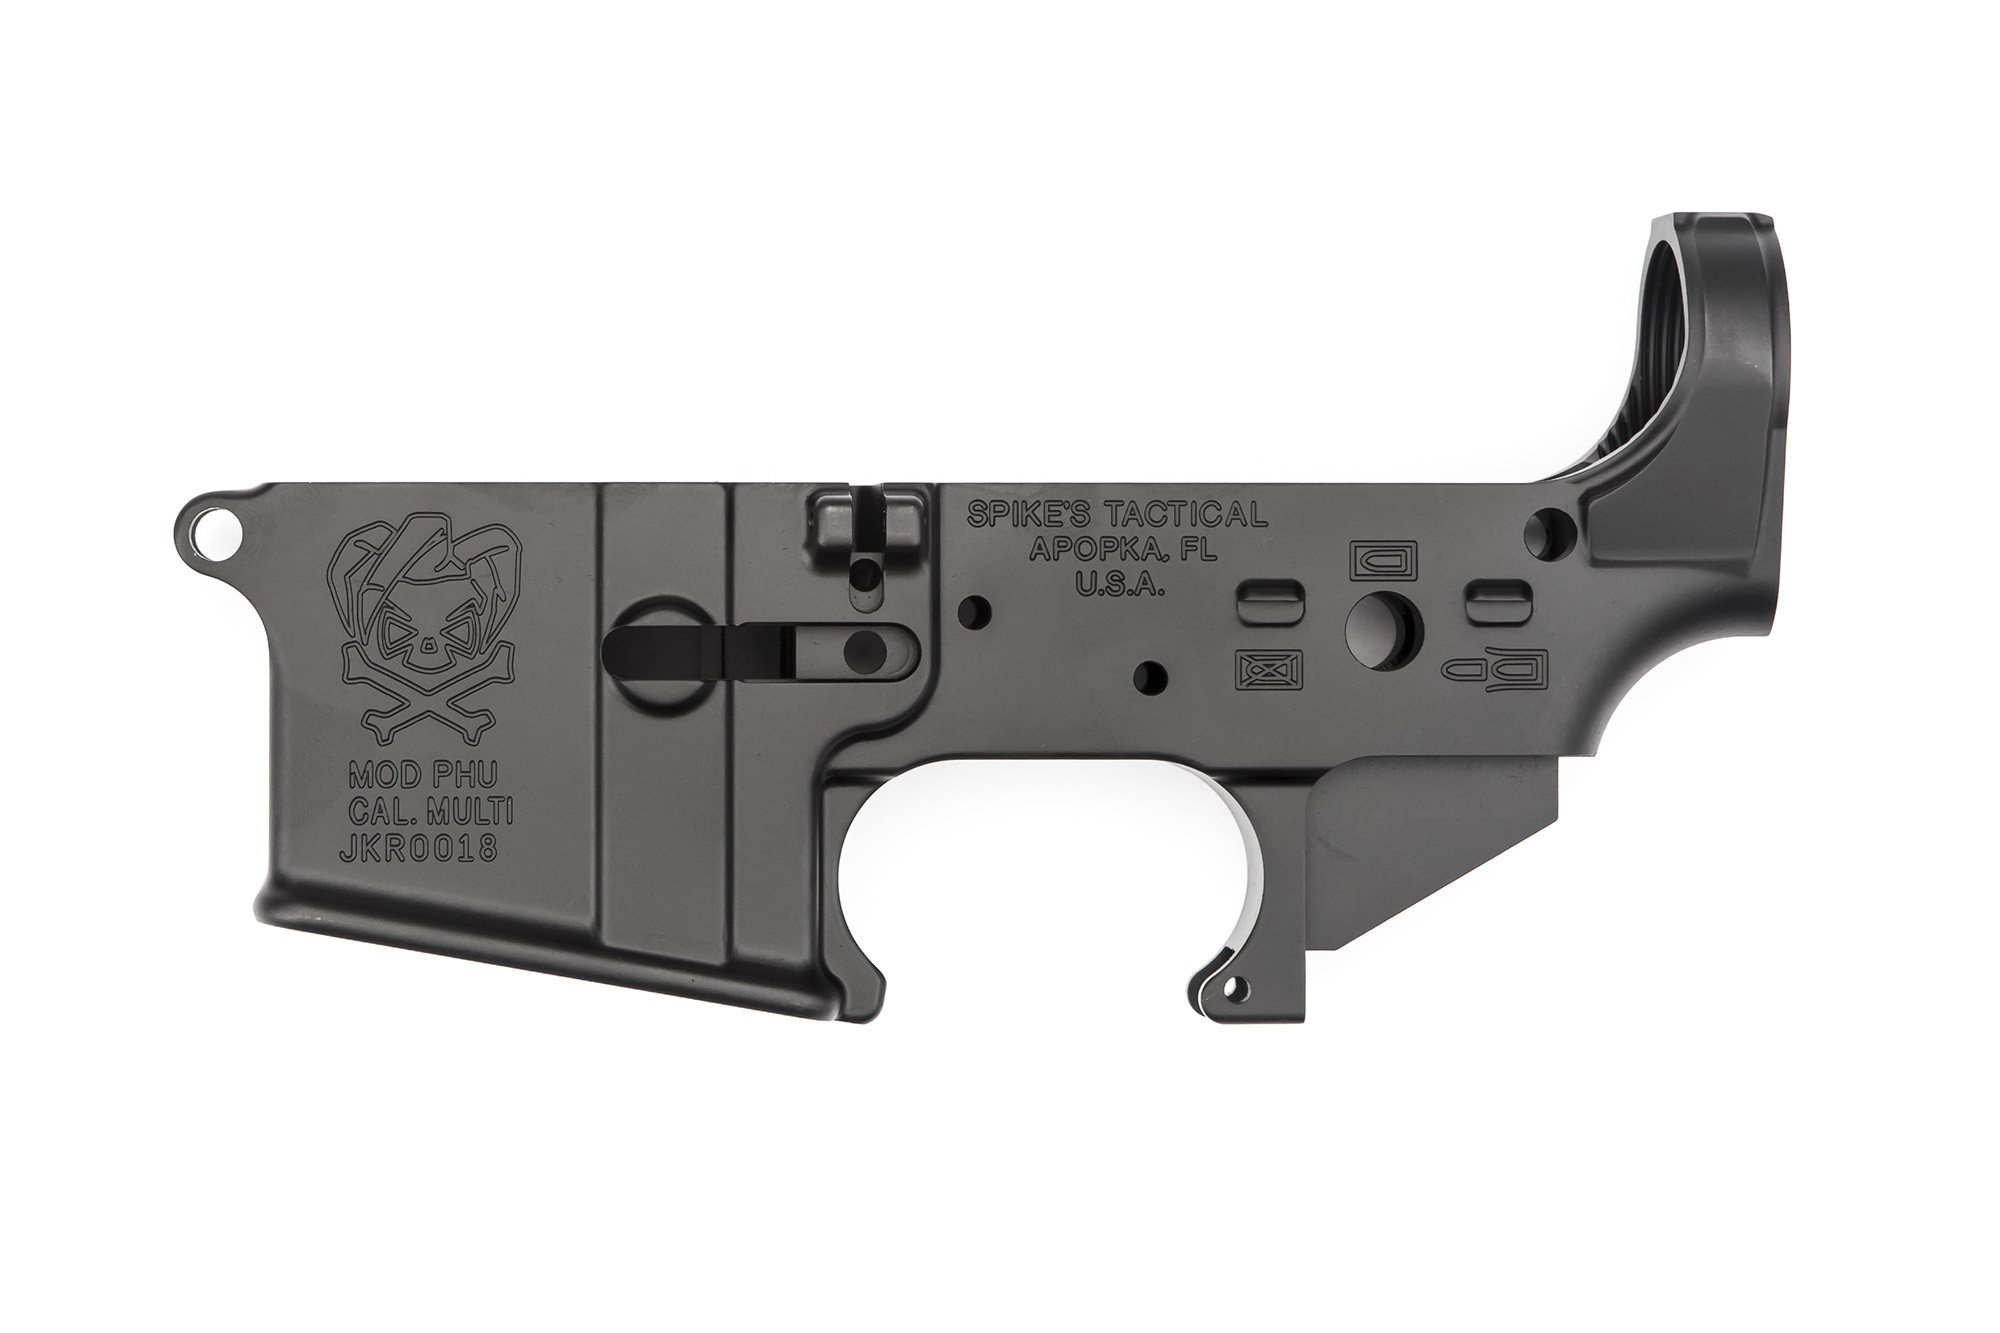 ar15-spikes-tactical-stripped-lower-receiver-pipe-hitters-union-joker-anodized-black-900224